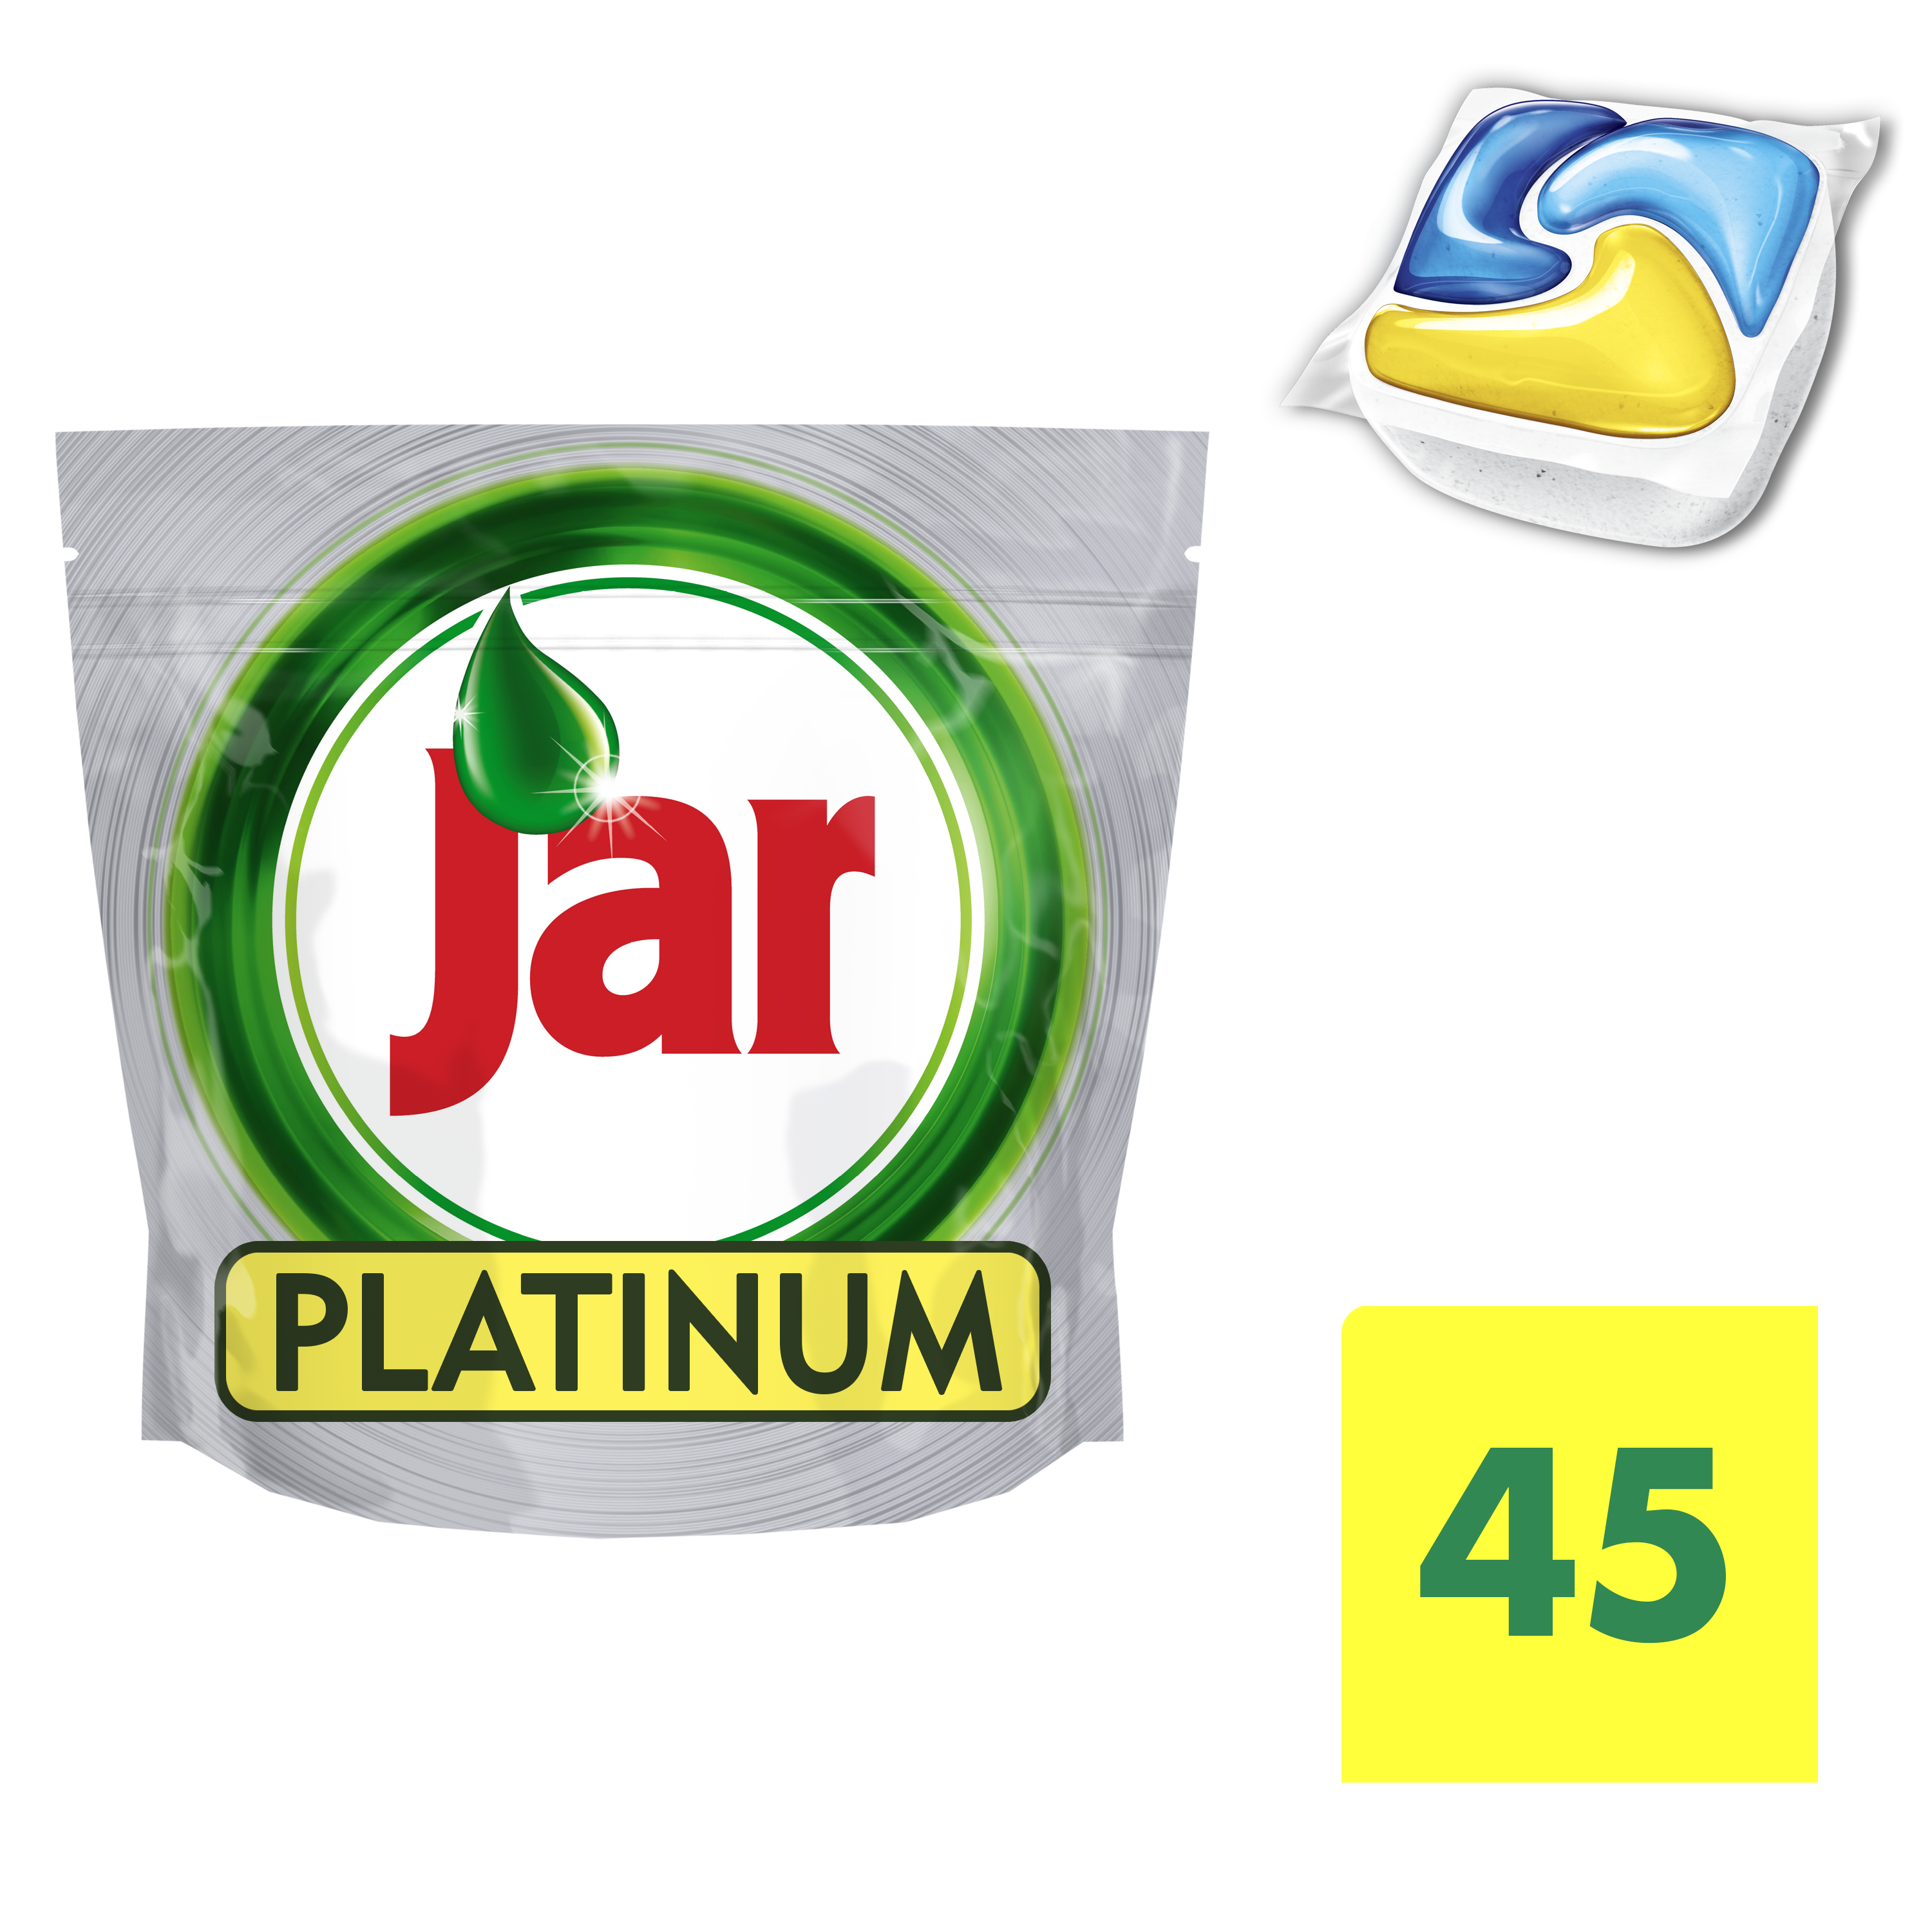 JAR Platinum Yellow 45ks - kapsle do myčky